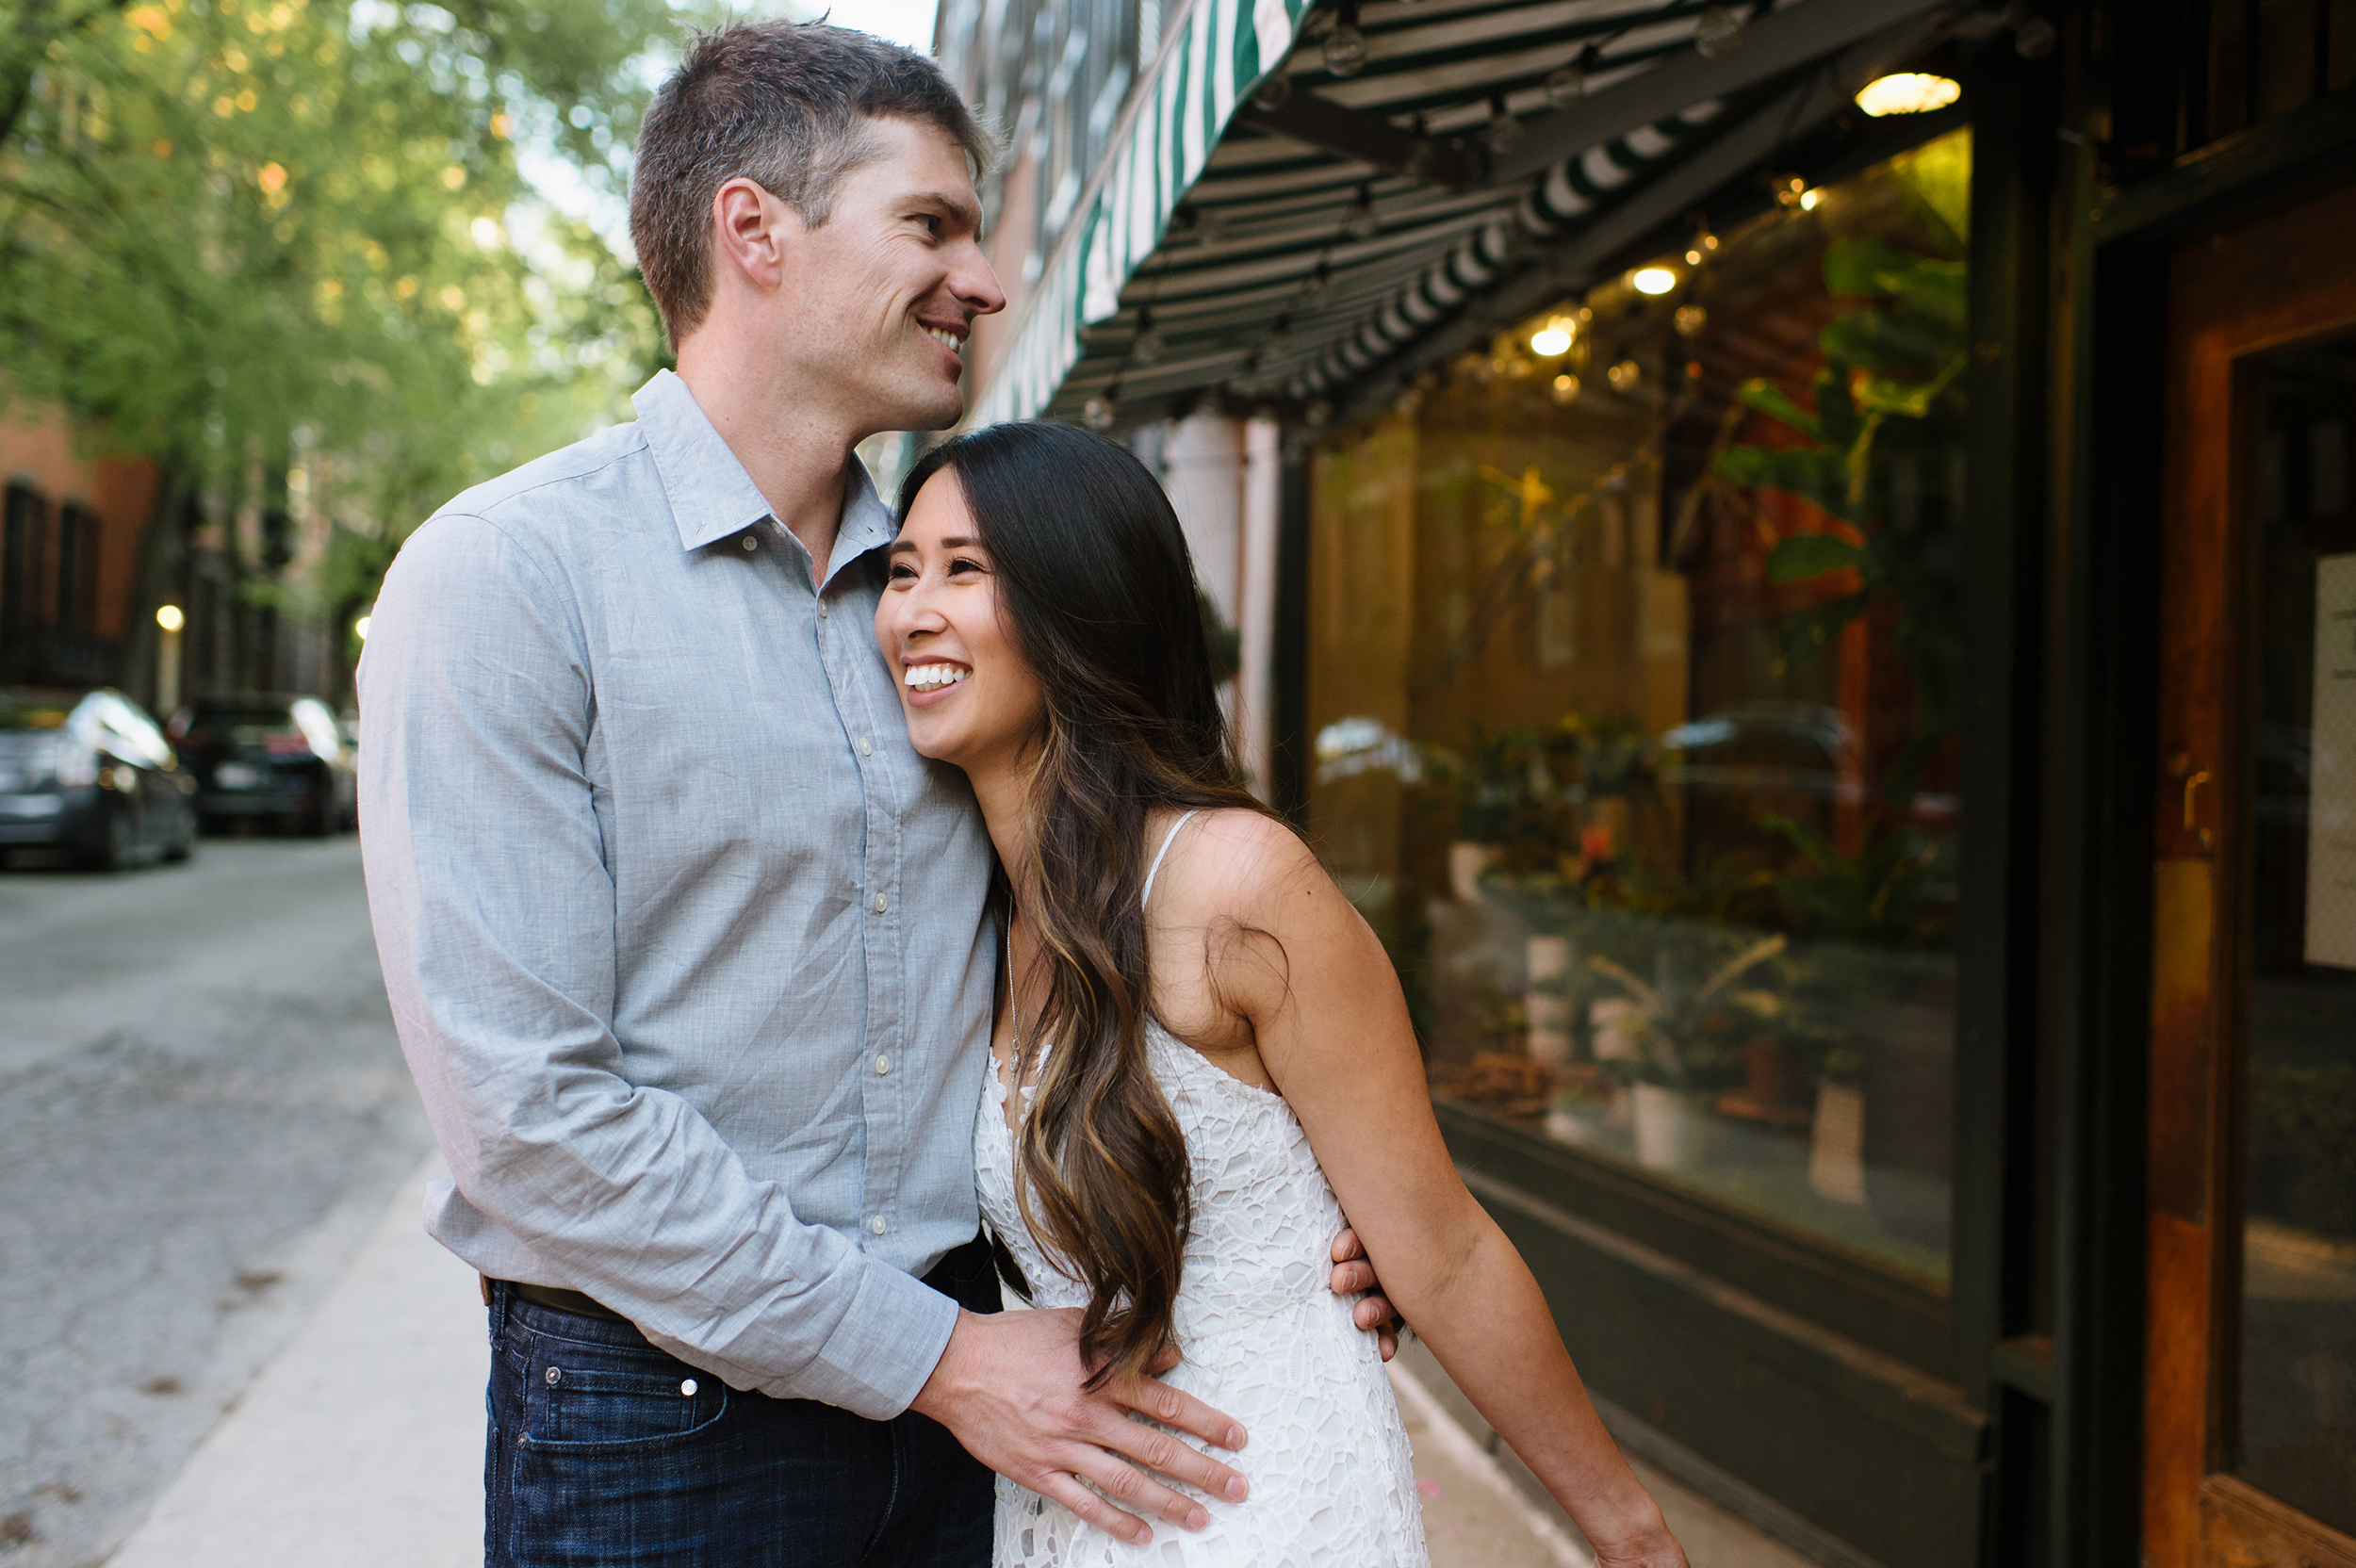 Couple standing out in front of flower shop smiling in Beacon Hill